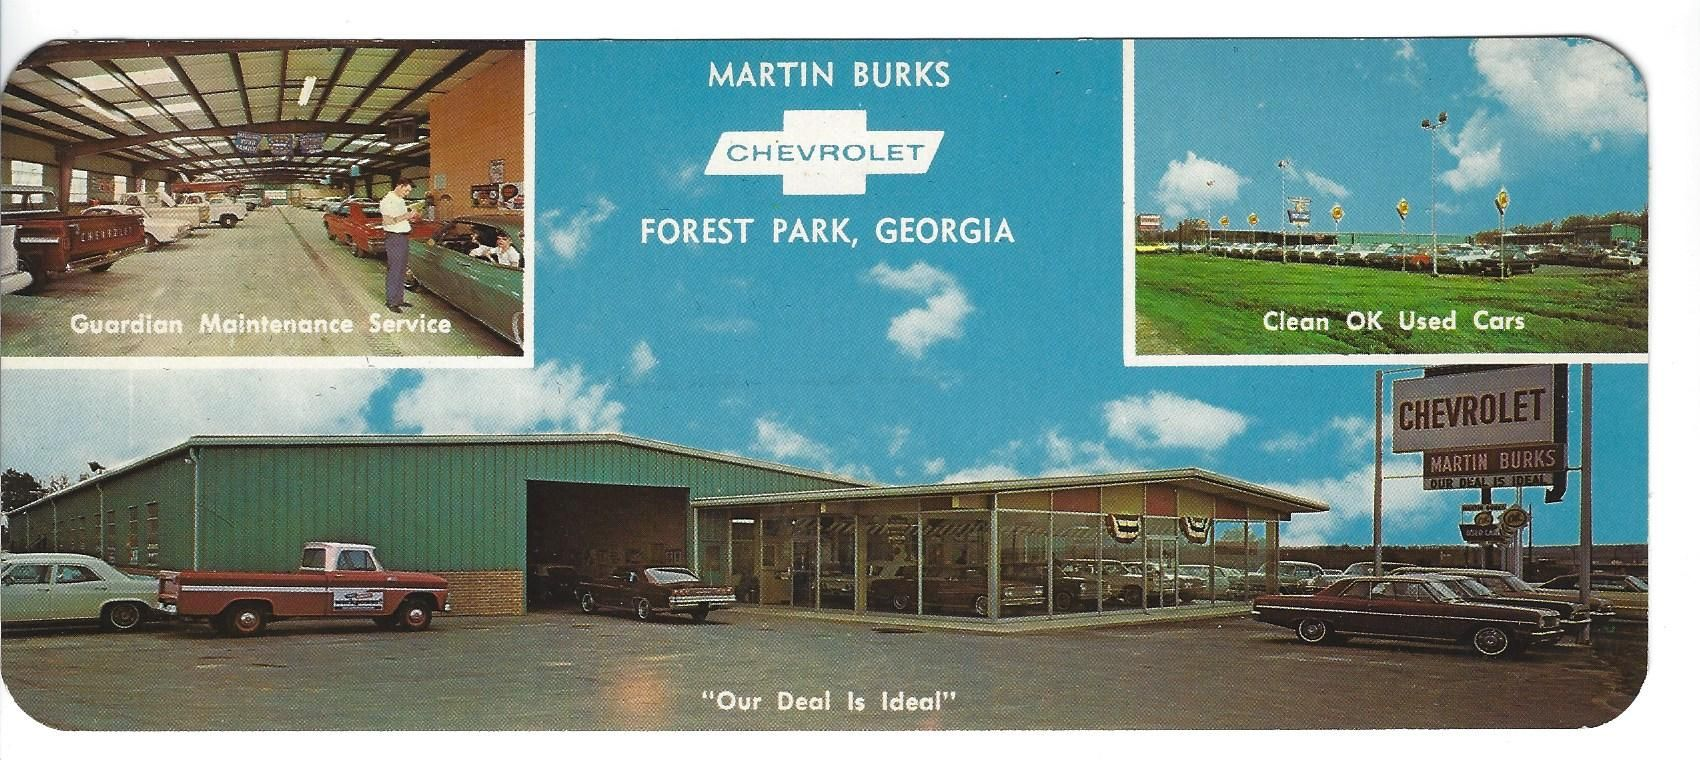 Chevrolet Dealers In Ga >> Martin Burks Chevrolet Forest Park Ga Marketing Postcard